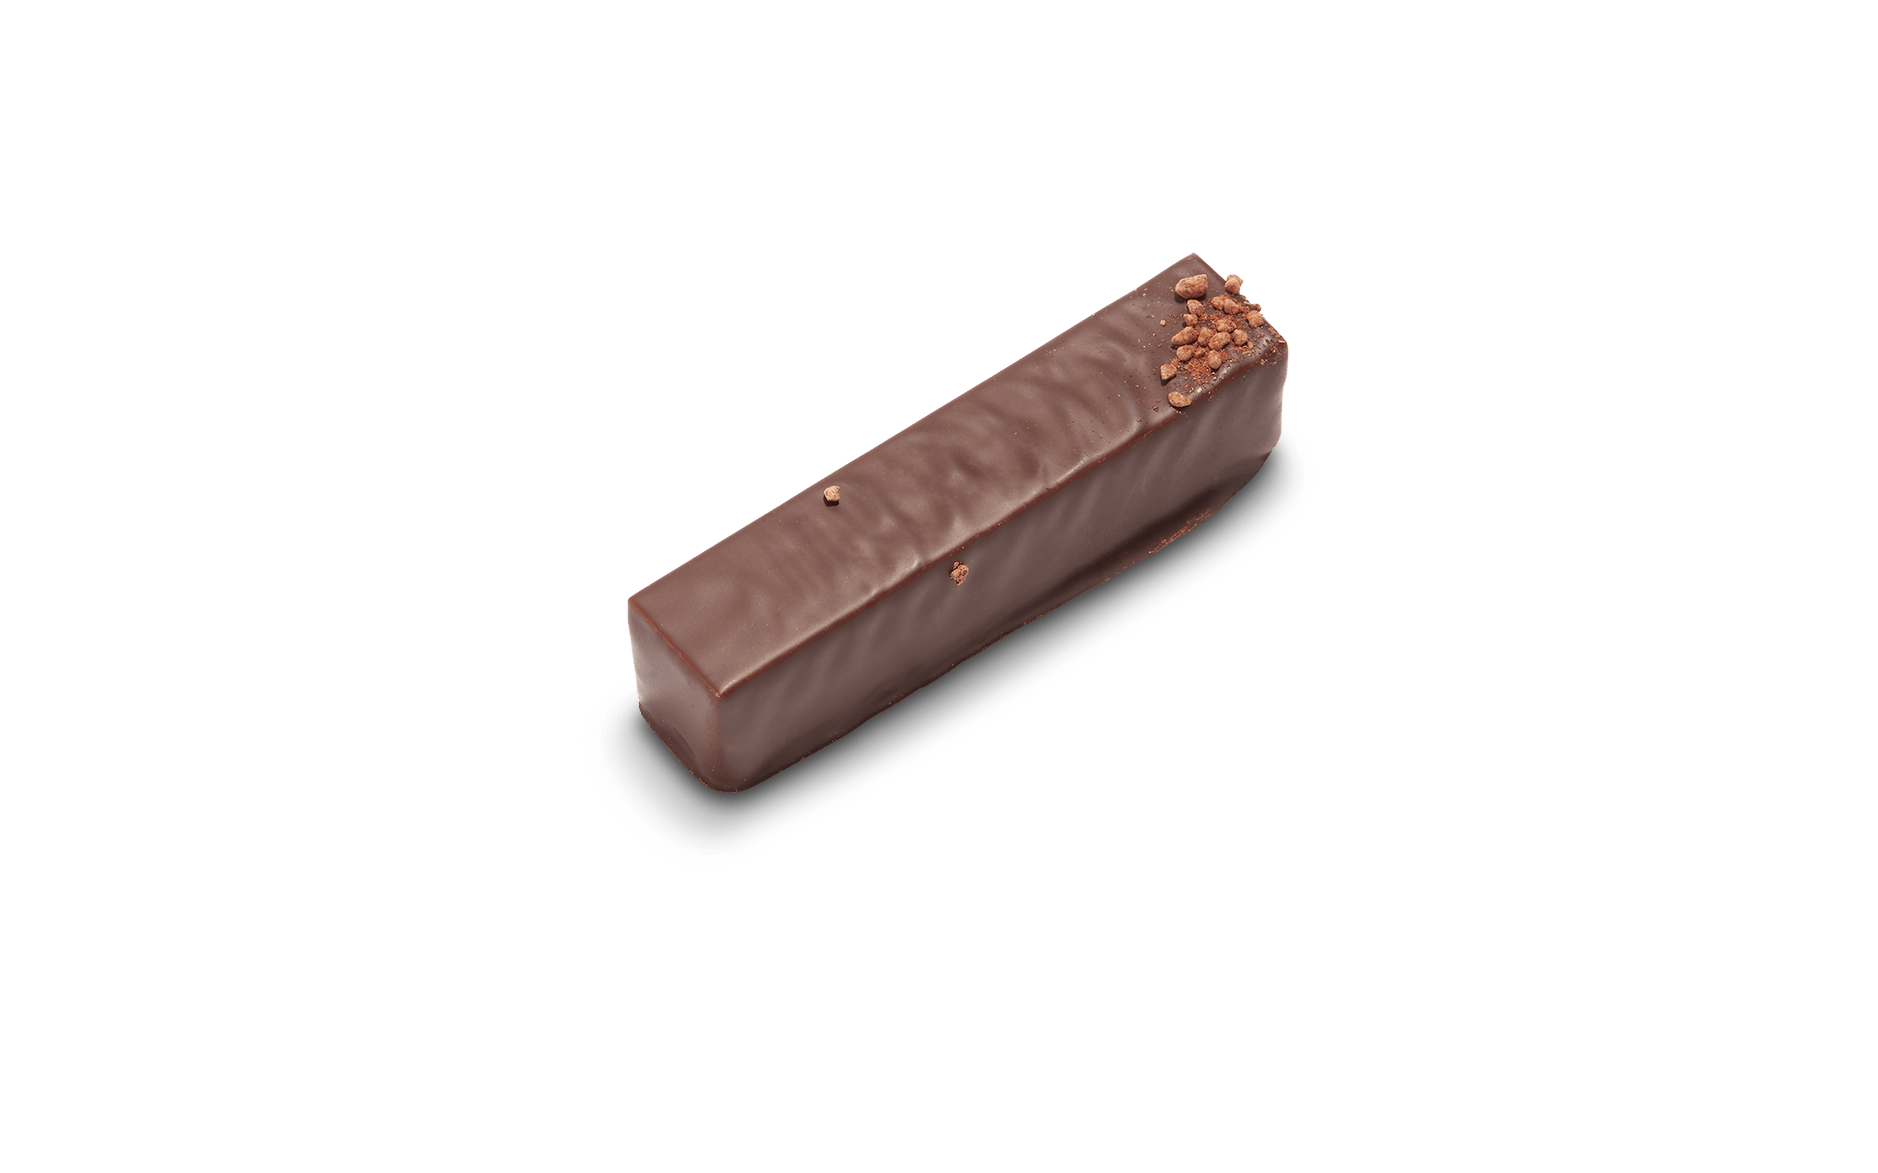 Caramelised Hazelnut Barre² Chocolat Pierre Marcolini